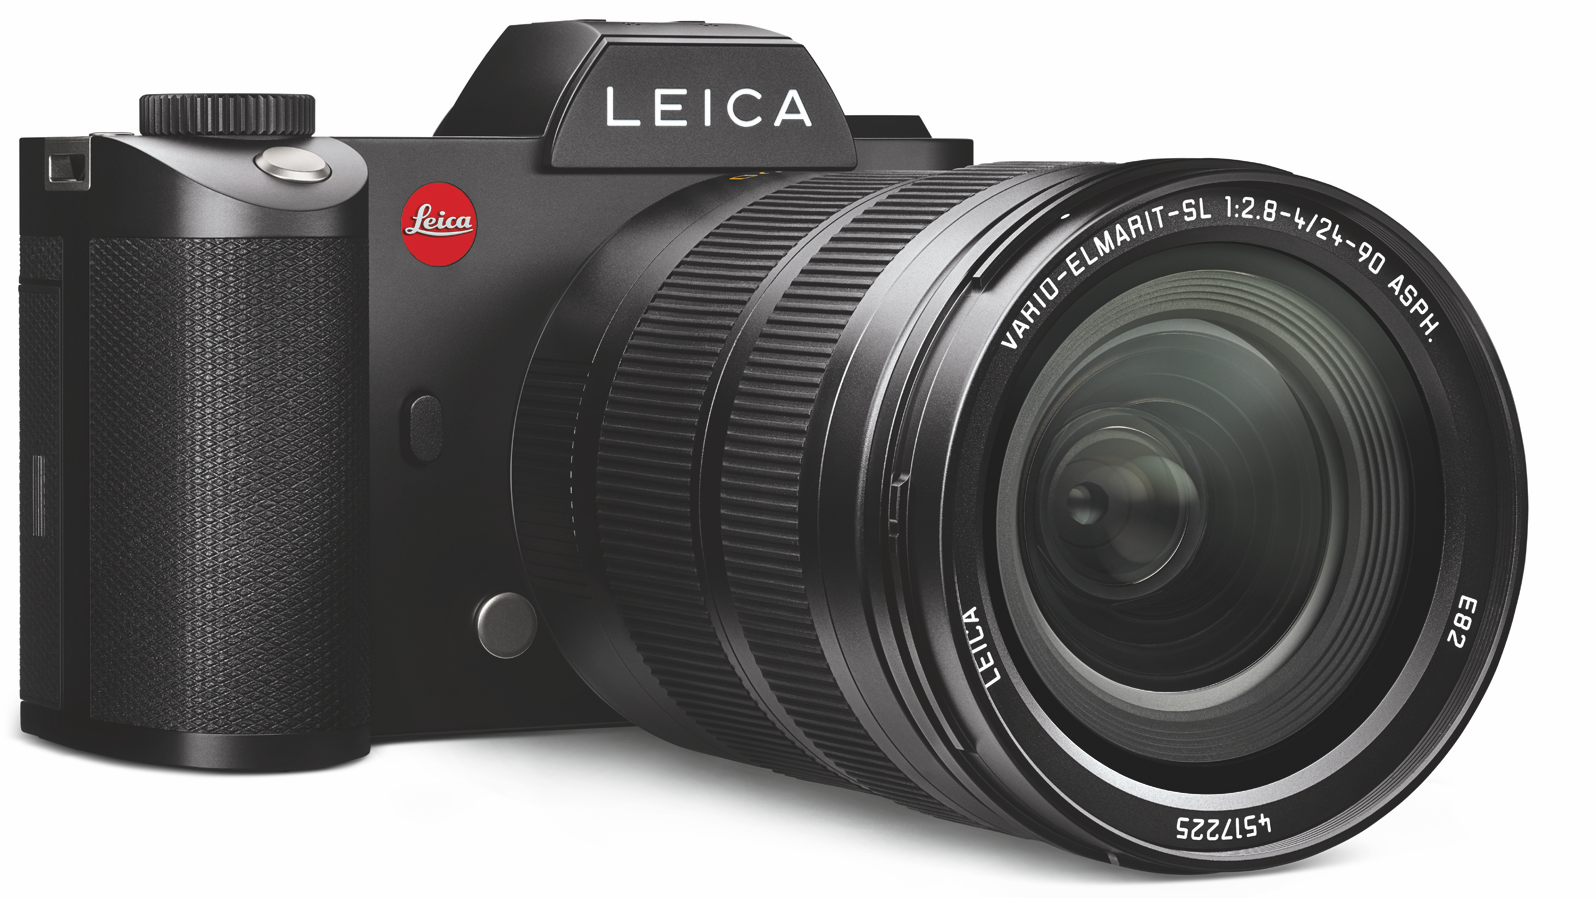 Buy Leica Camera and lens Online, Leica Camera and Lens for Sale ...